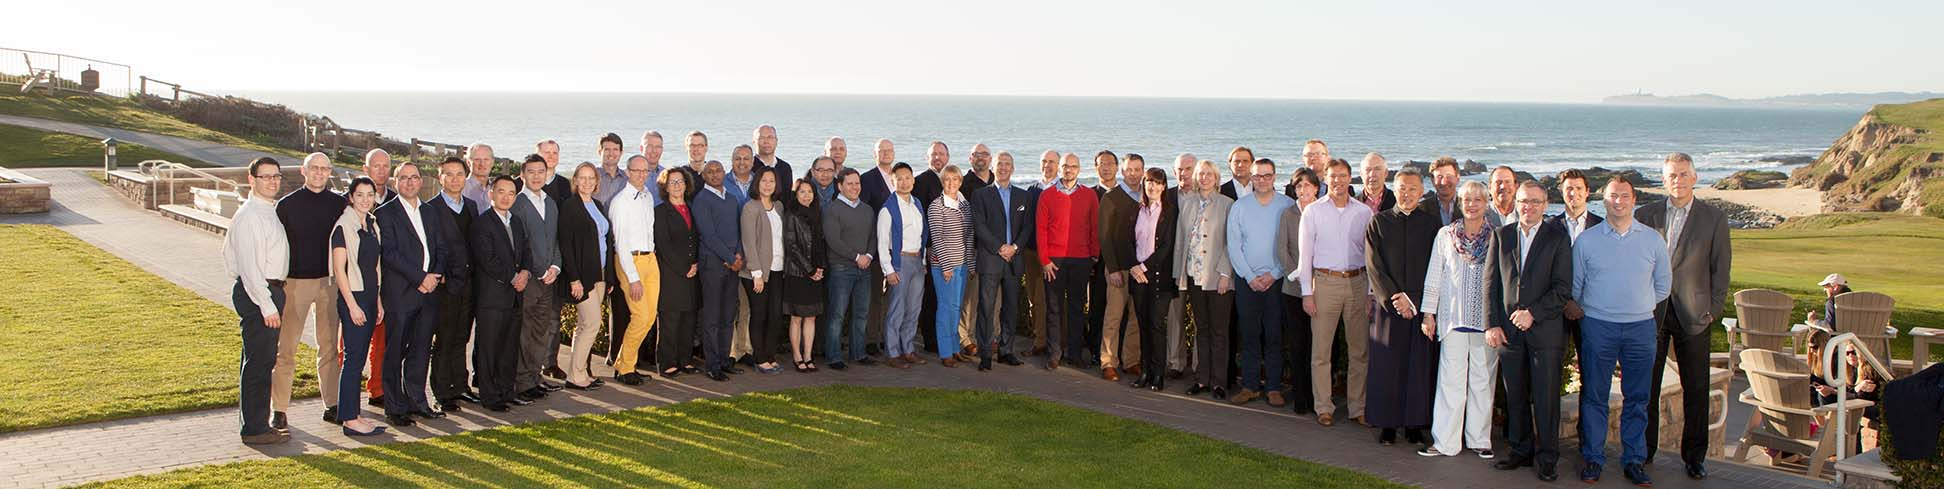 group photo at a conference